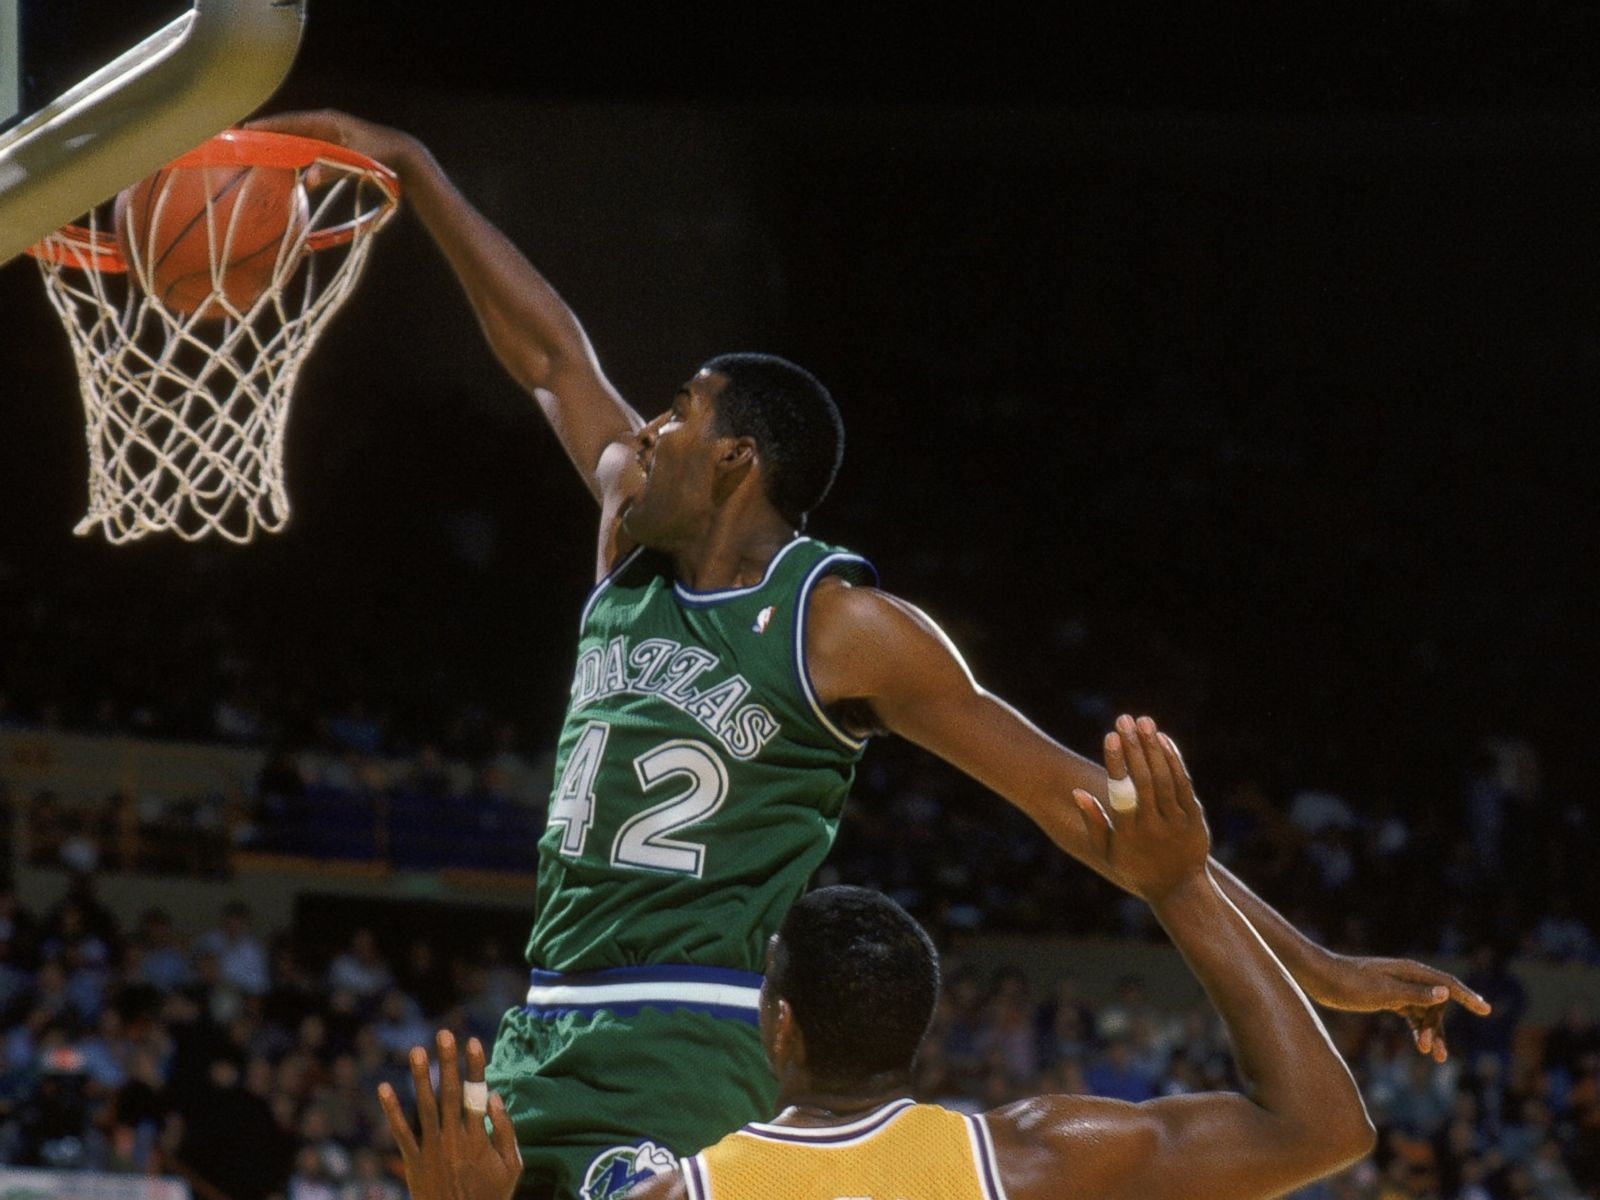 PHOTO Roy Tarpley 42 of the Dallas Mavericks dunks the ball past